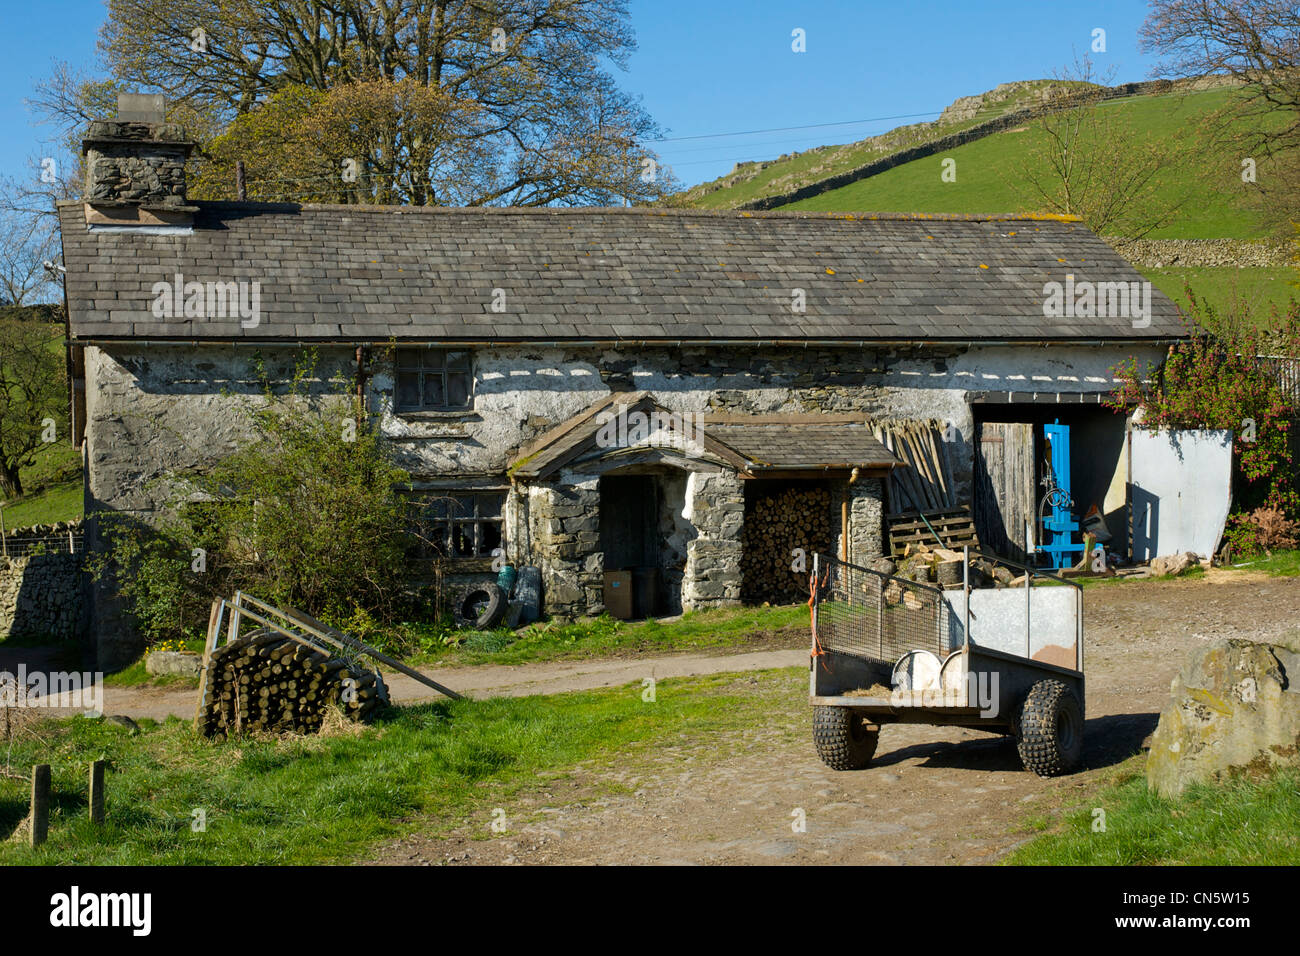 Far Orrest Farm, near Windermere, Lake District National Park, Cumbria, England UK - Stock Image